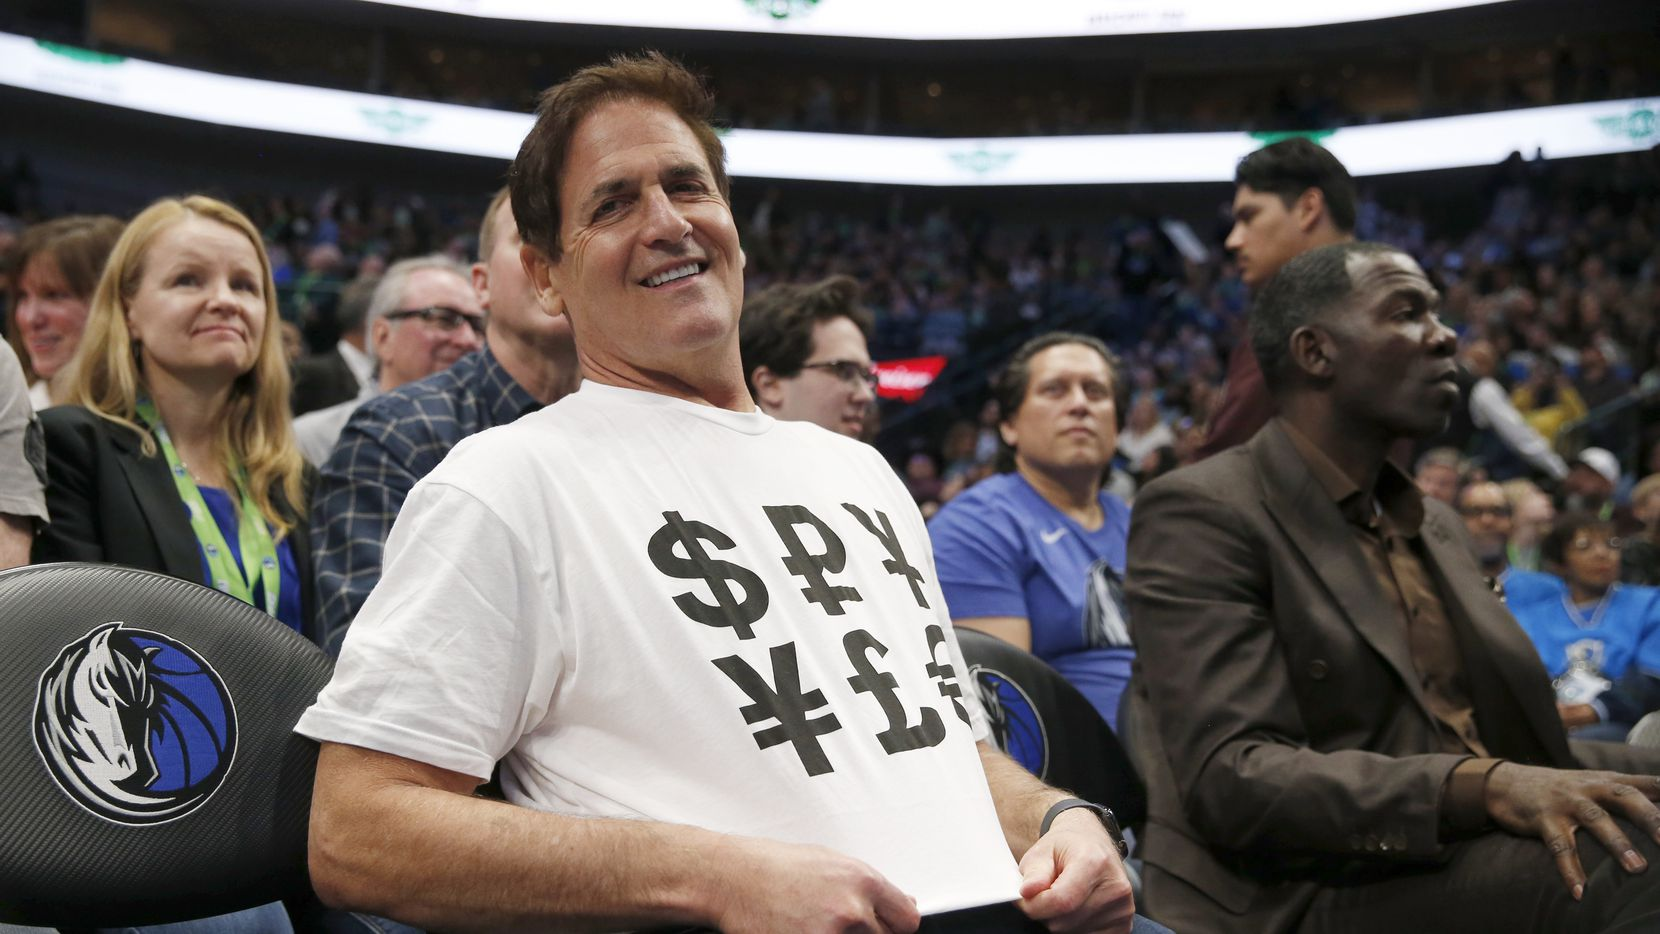 Dallas Mavericks owner Mark Cuban sports a shirt with money signs during the second half of play at American Airlines Center in Dallas on Friday, March 6, 2020. Dallas Mavericks defeated the Memphis Grizzlies 121-96.